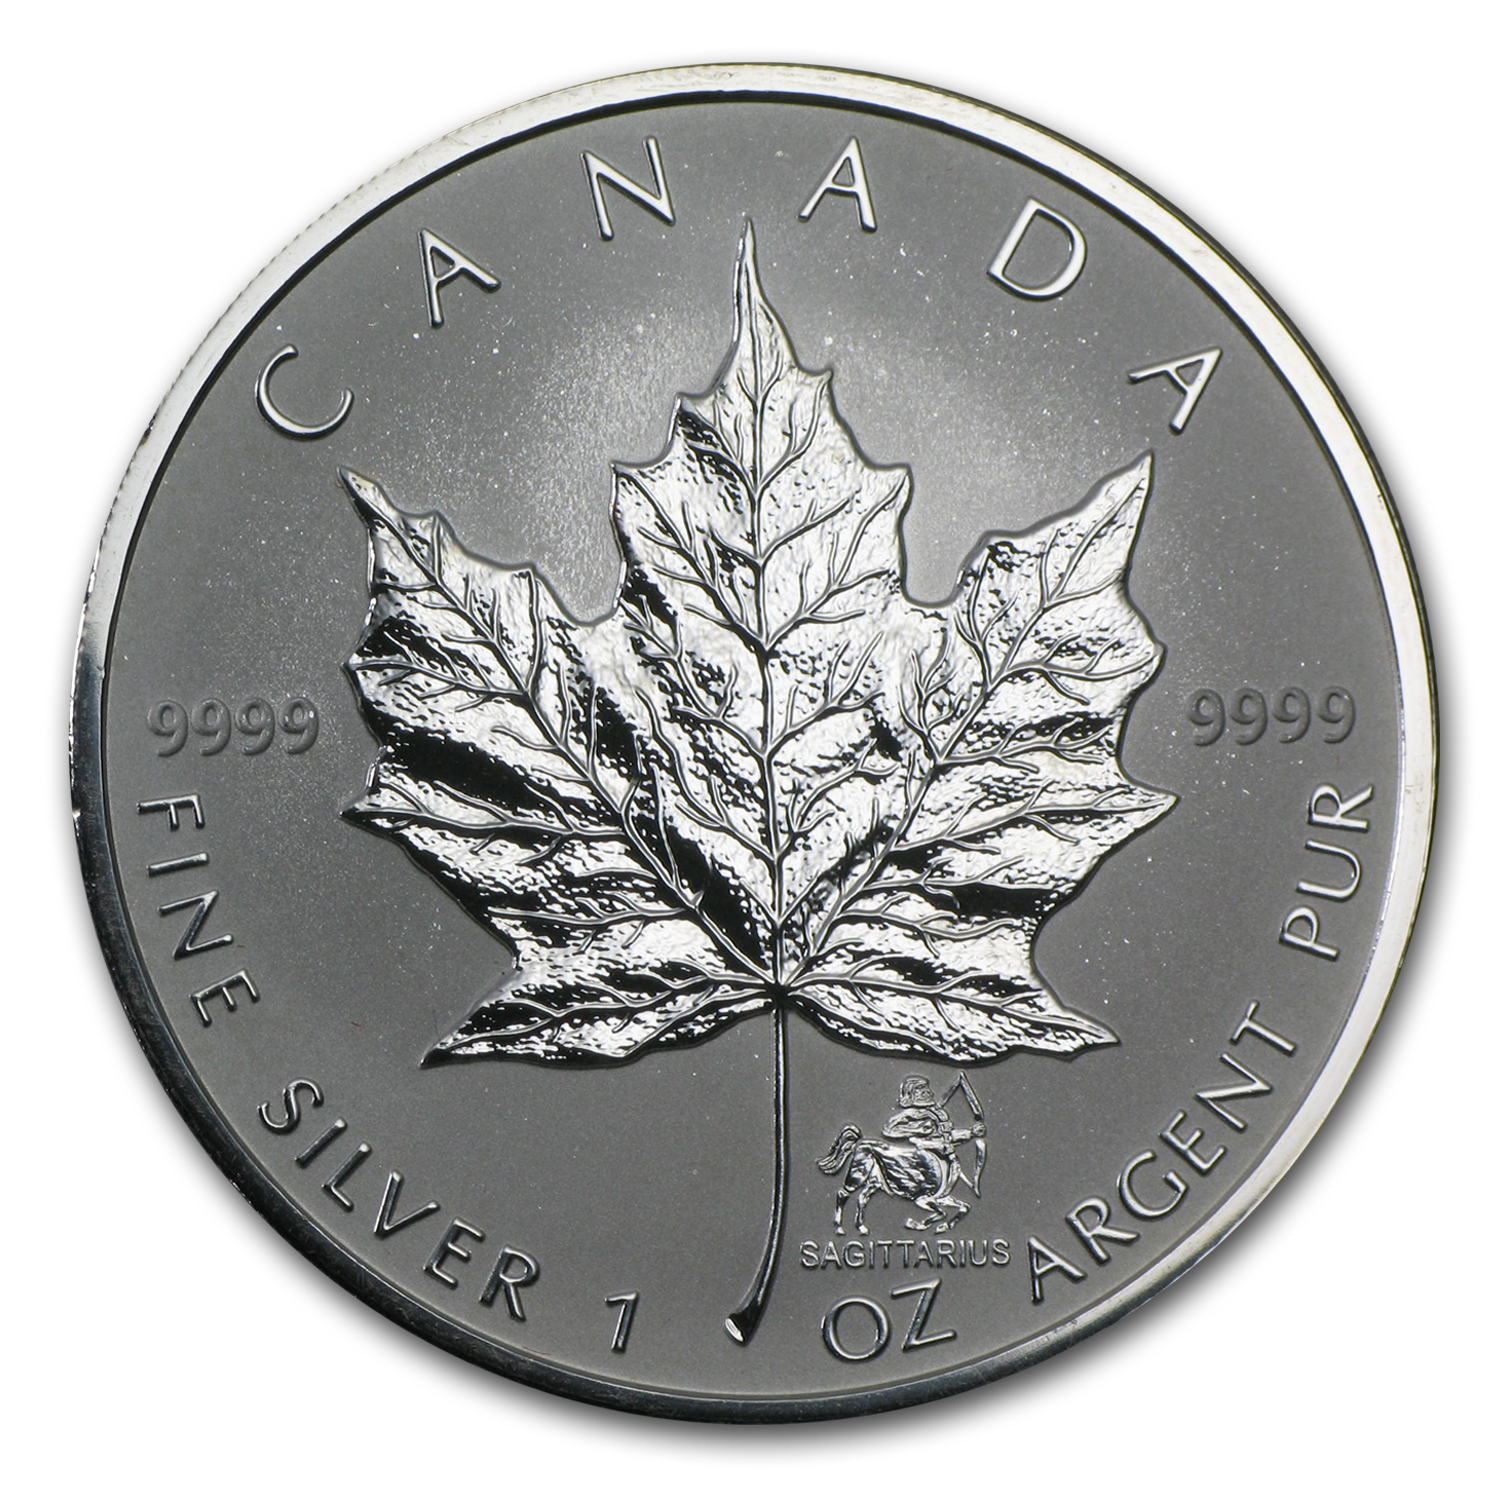 2004 1 oz Silver Canadian Maple Leaf - Sagittarius Zodiac Privy